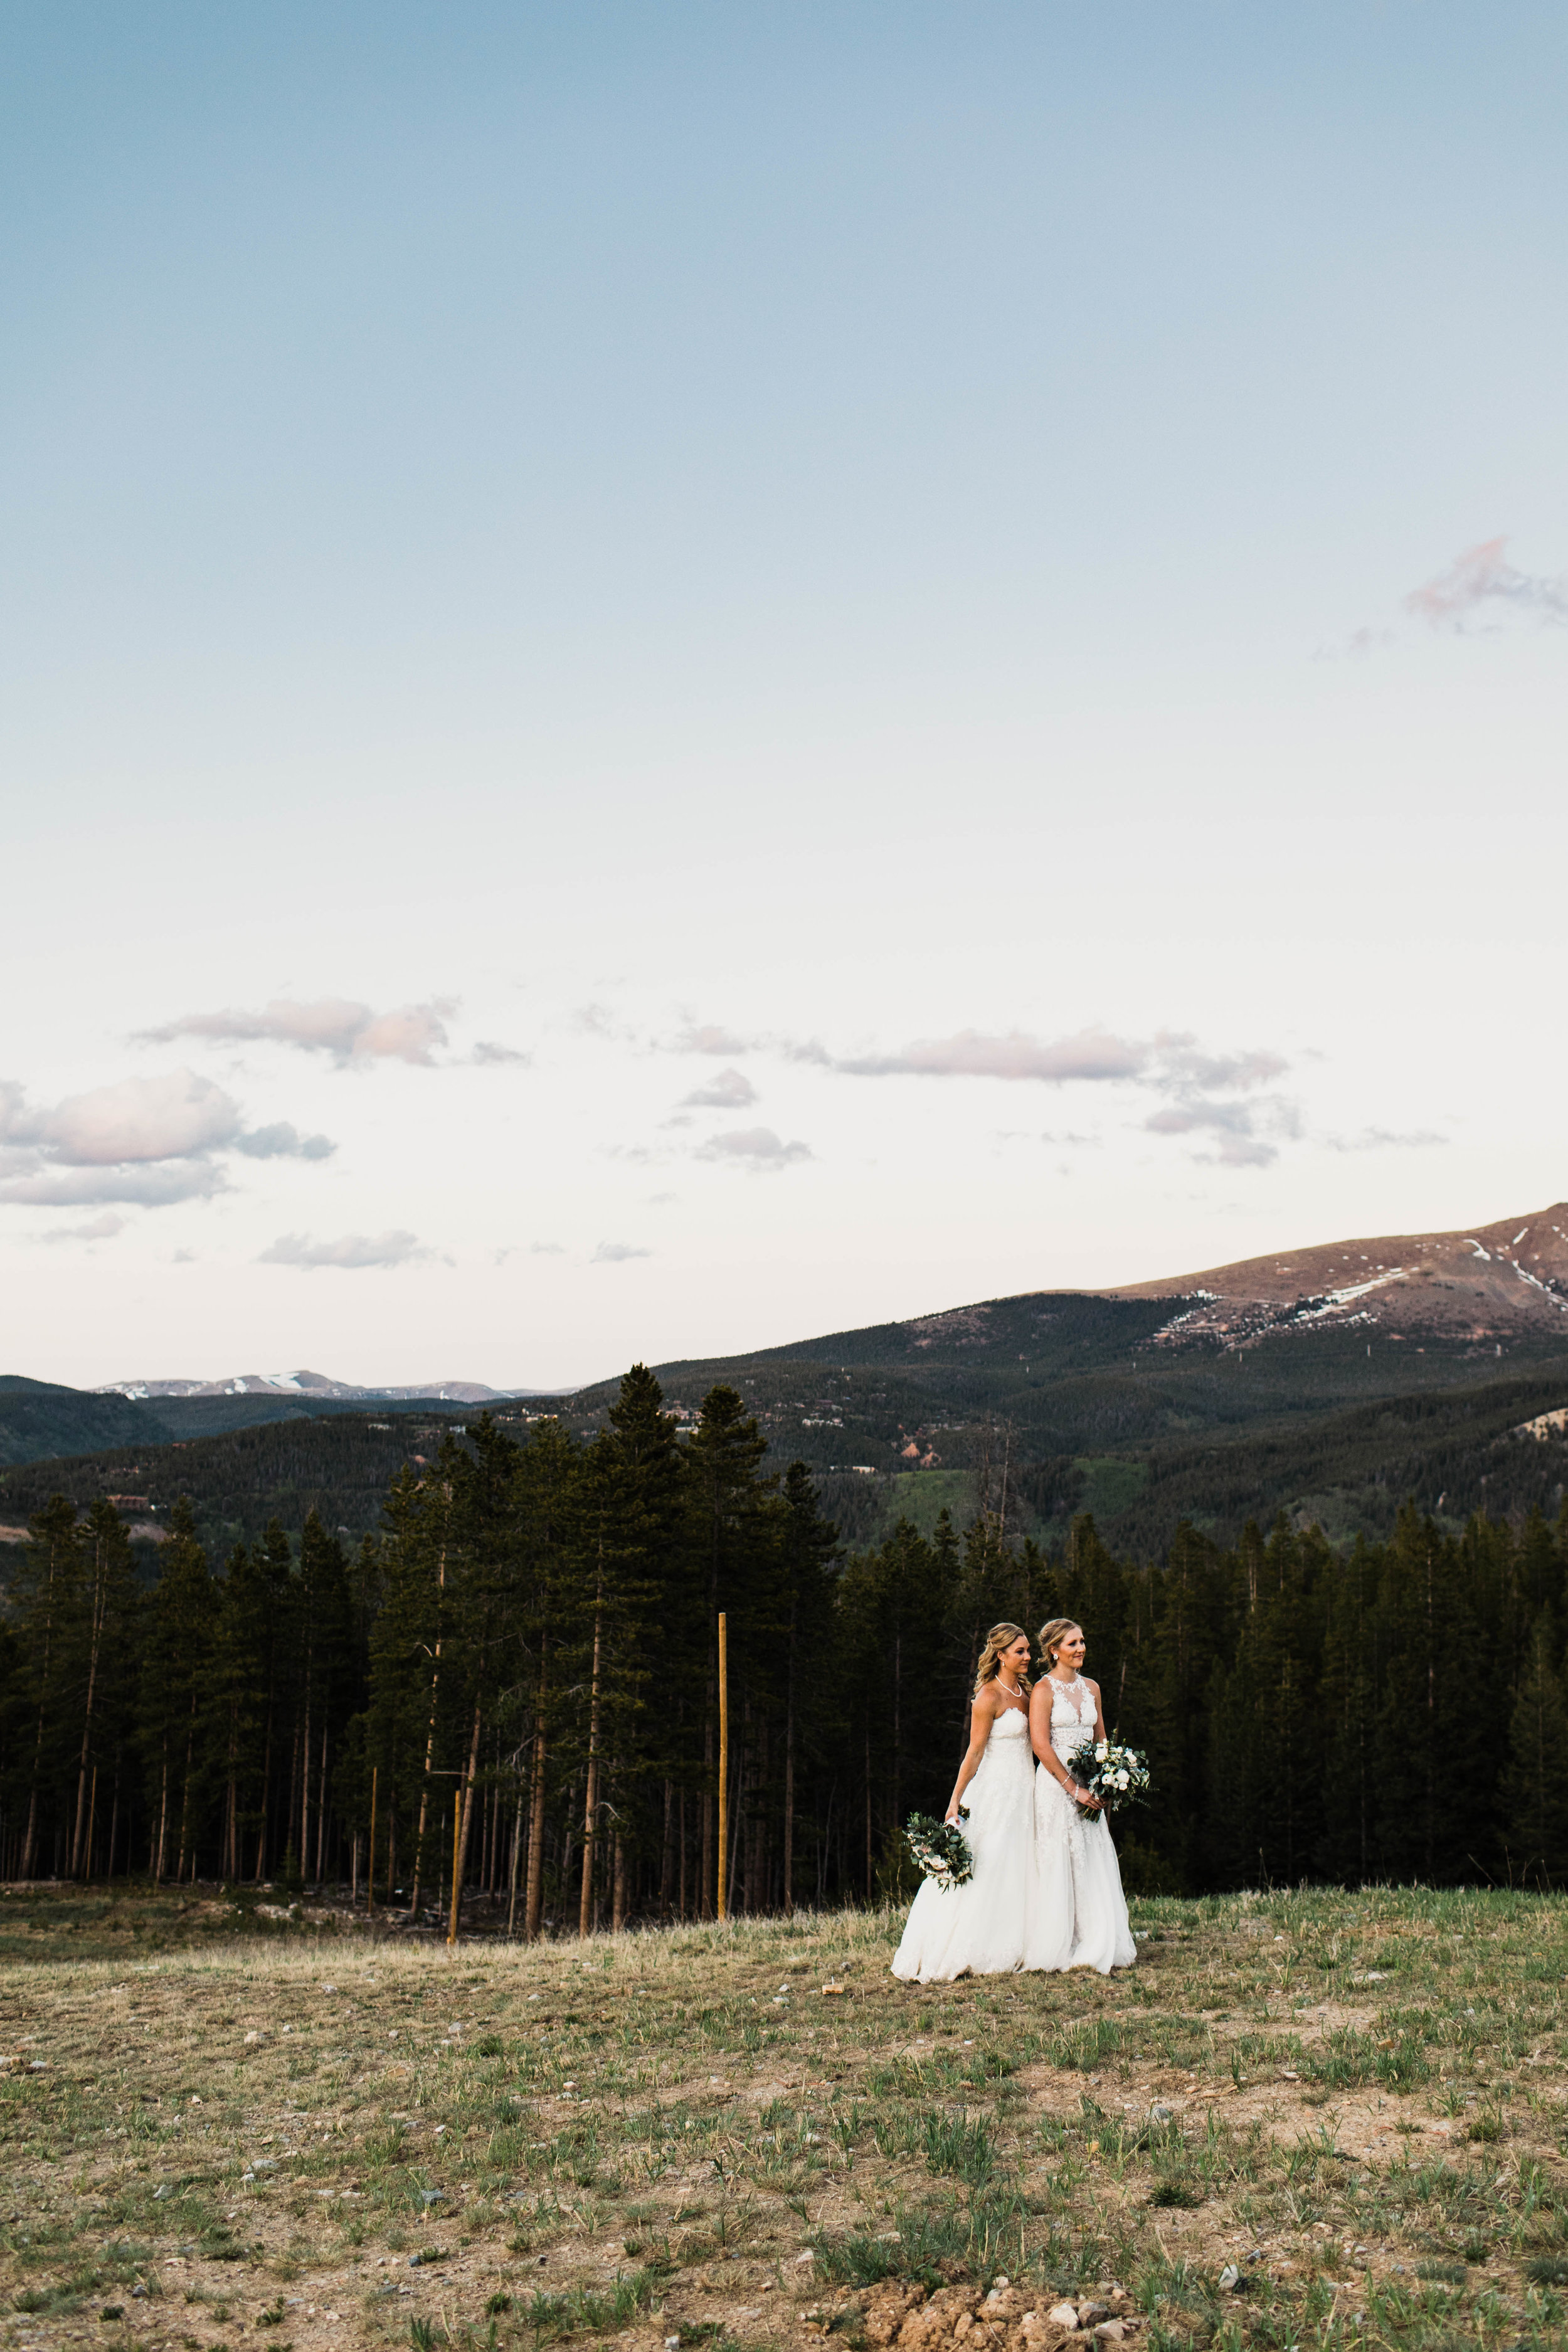 Ten Mile Station Mountain Wedding | Breckenridge, Colorado Wedding | Best Breckenridge Wedding Photographers